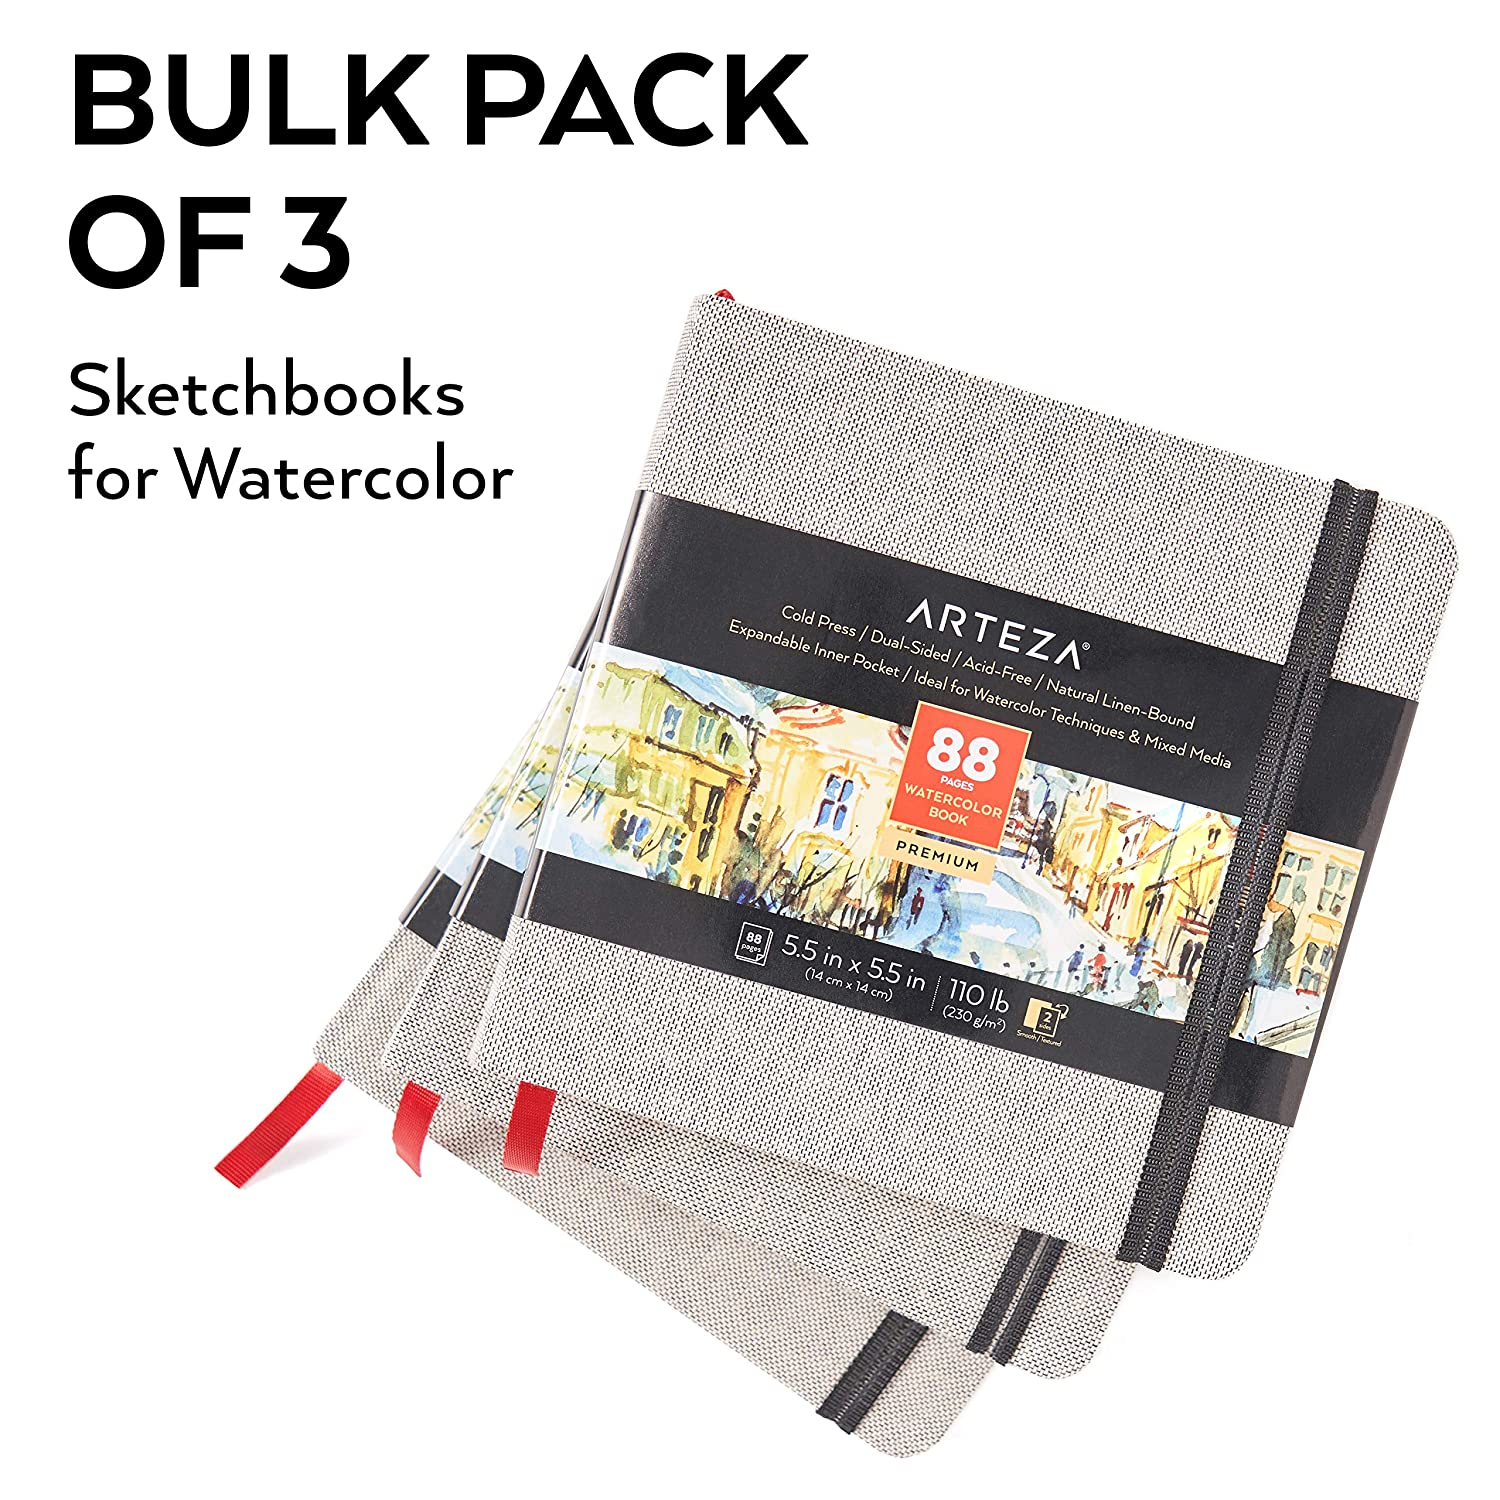 3-Pack 132 Sheets Hardcover 110lb Paper Book Watercolour Sketchbook for Use as Travel Journal and Mixed Media Pad Arteza Watercolour Sketchbooks Beige Art Journal 5.5x5.5-inch